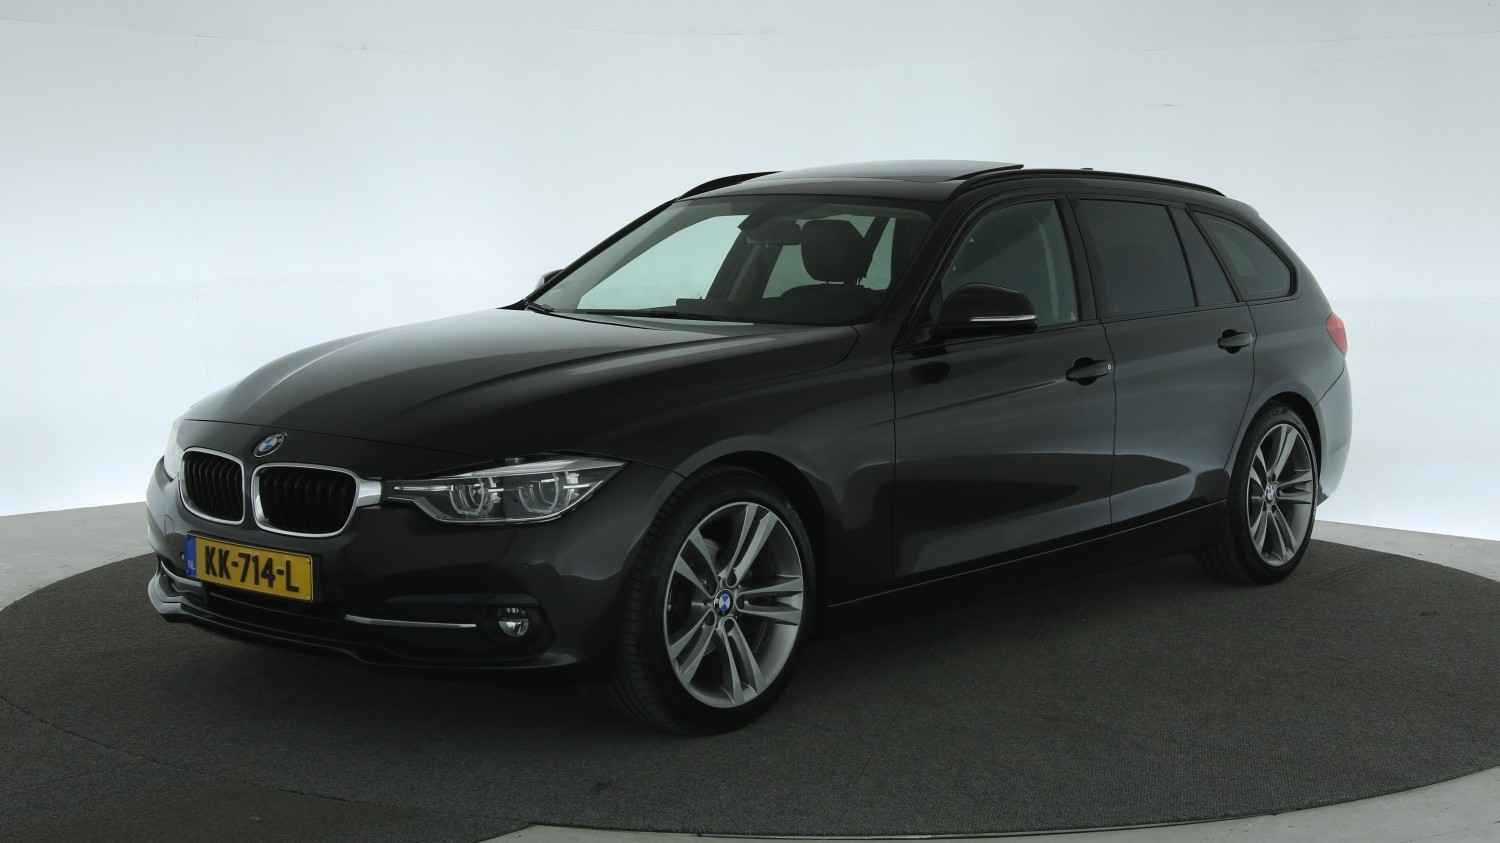 BMW 3-serie Station 2016 KK-714-L 1